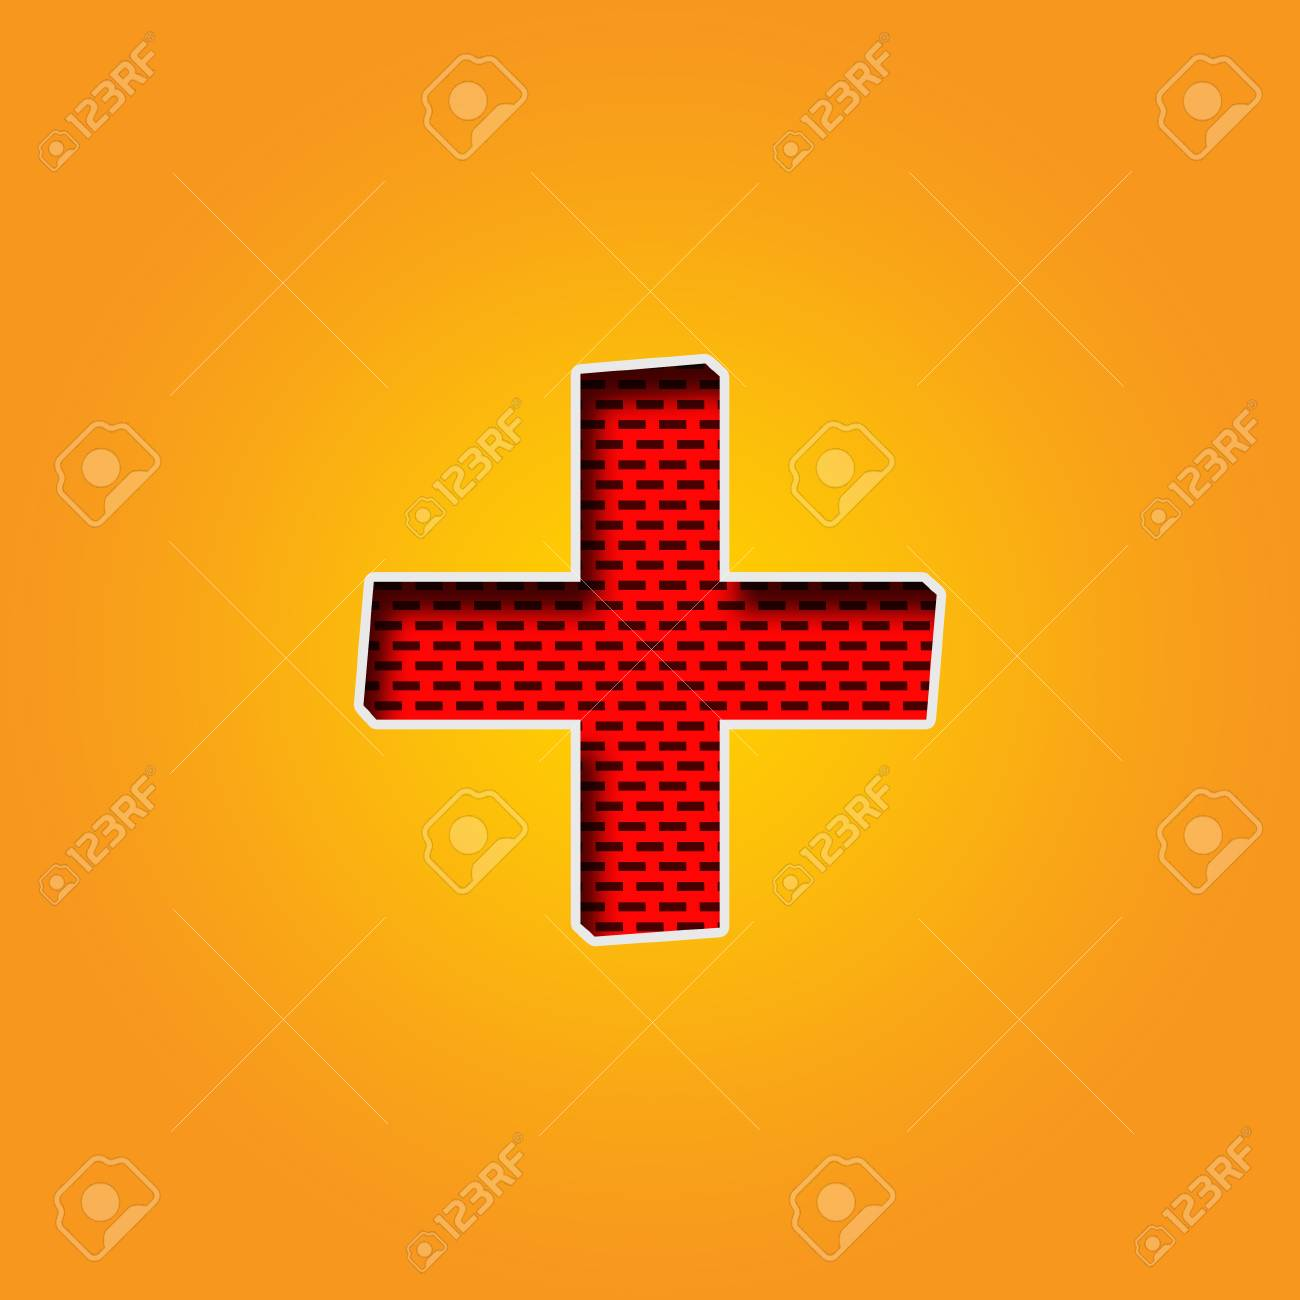 Single Character + Plus Sign Font In Orange And Yellow Color.. Stock ...